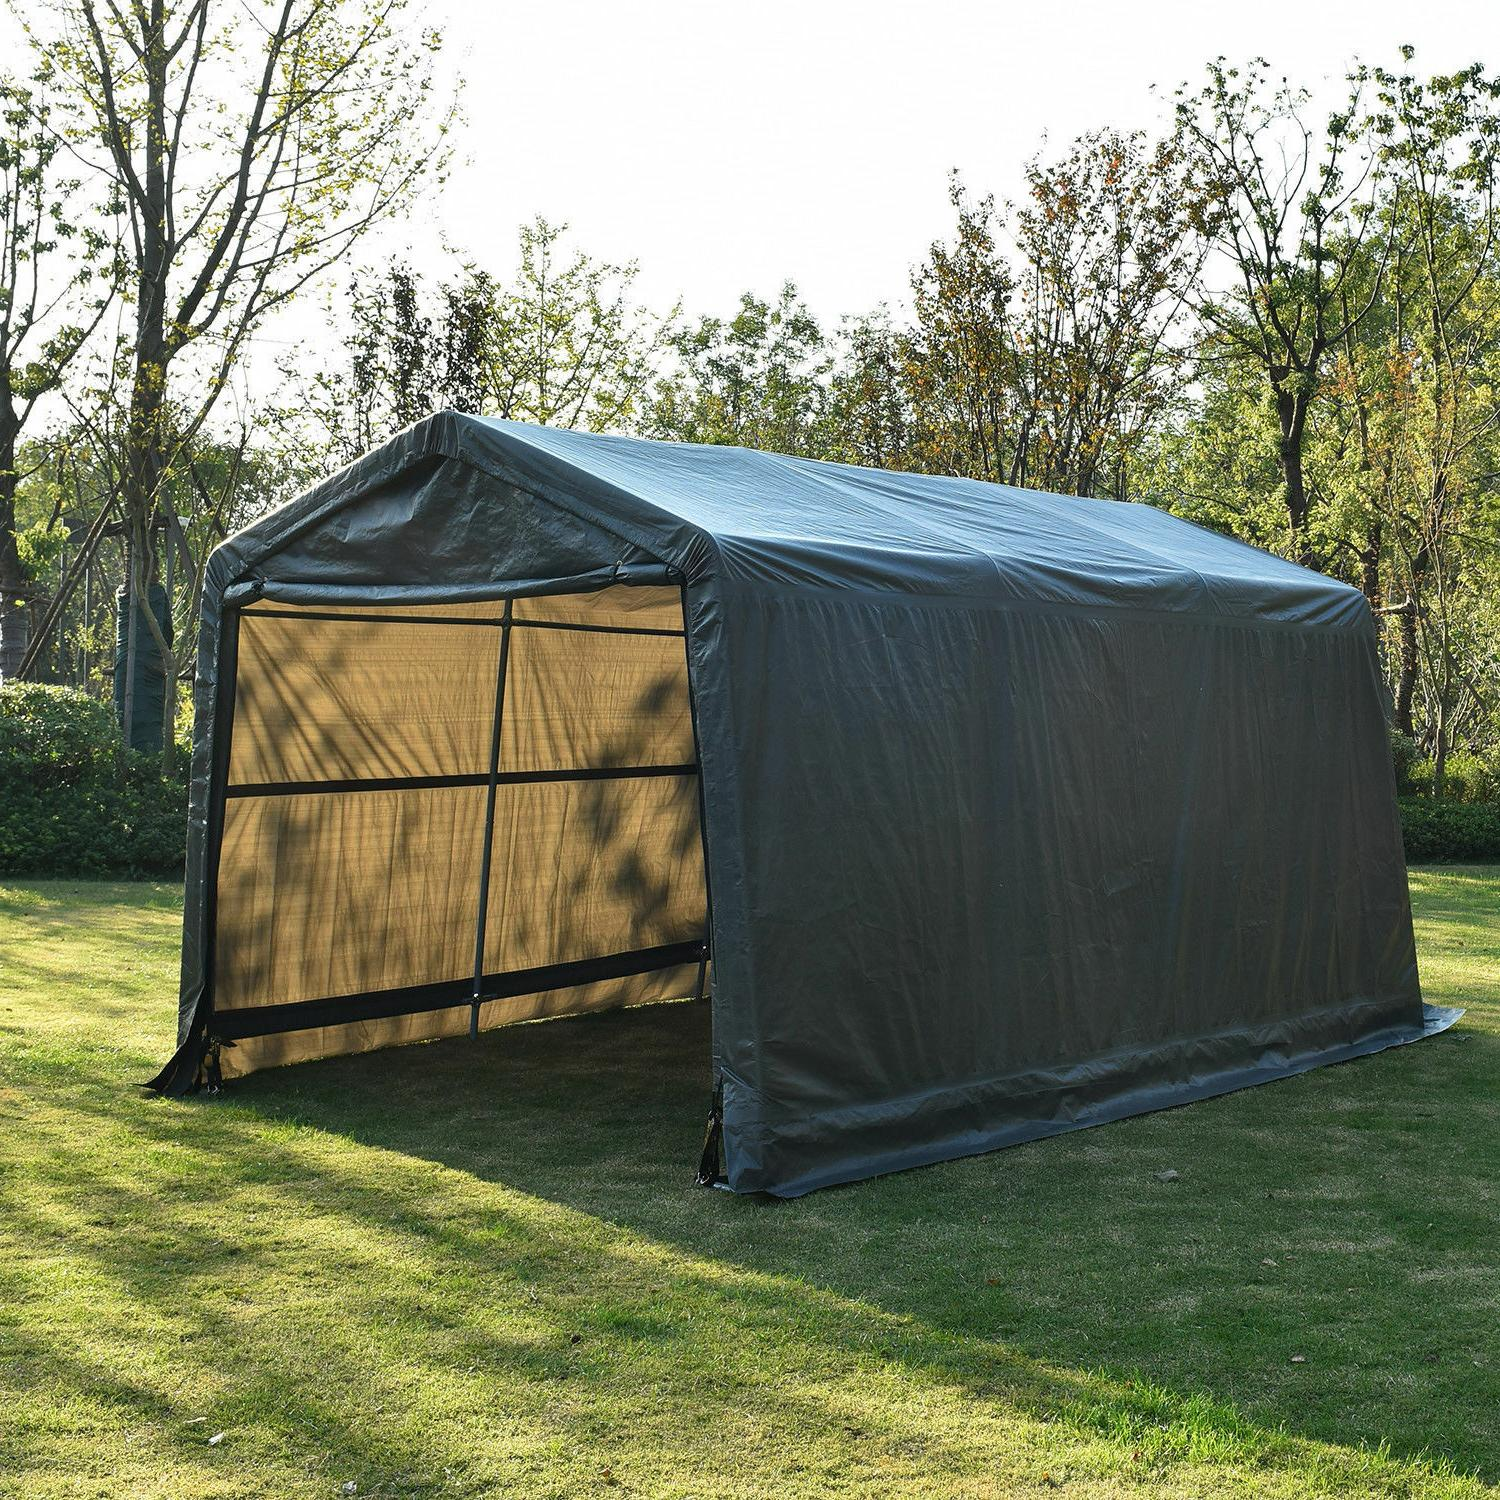 10 15ft outdoor carport canopy portable shelter